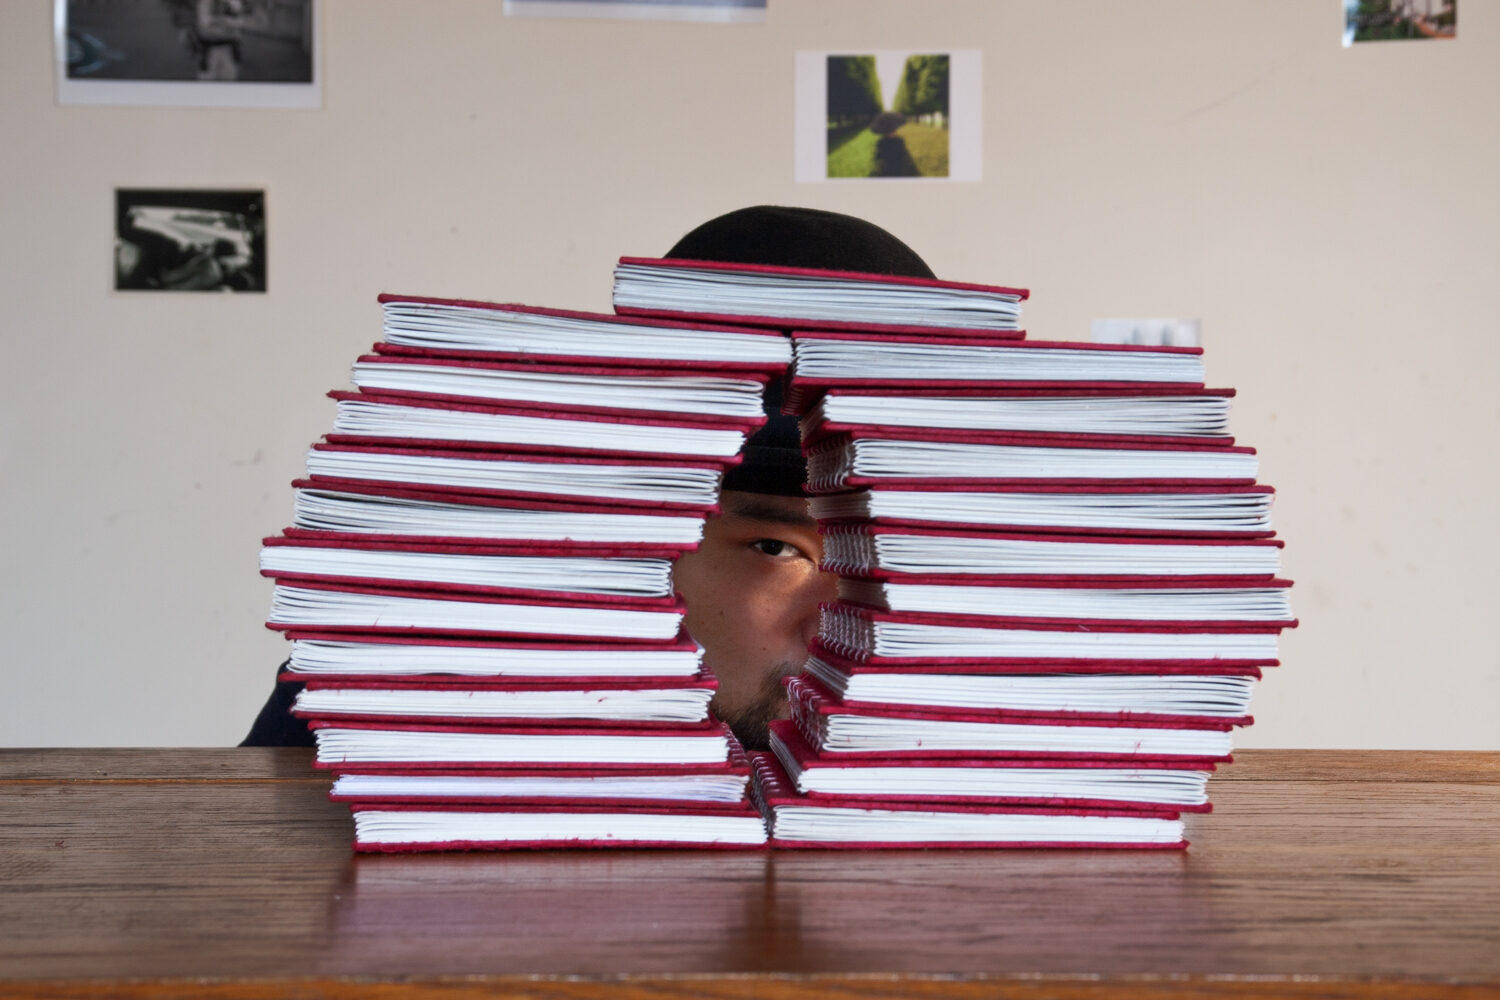 An Asian man in a derby hat peering through a pile of 37 little red books.